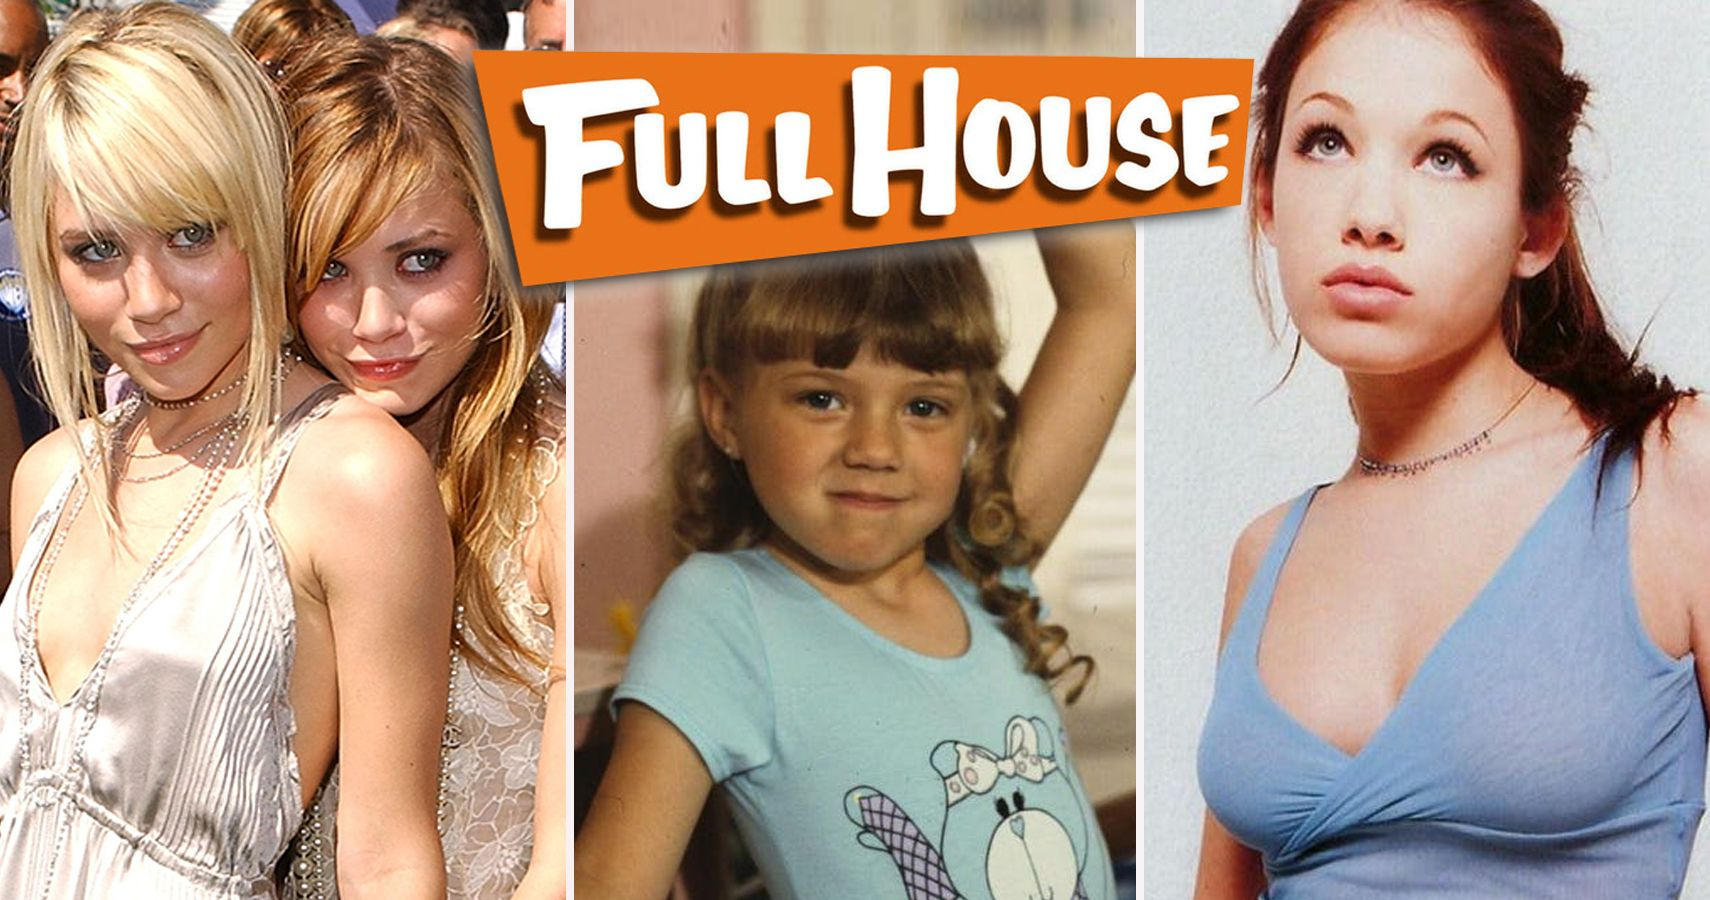 Full house stephanie and gia become friends before dating